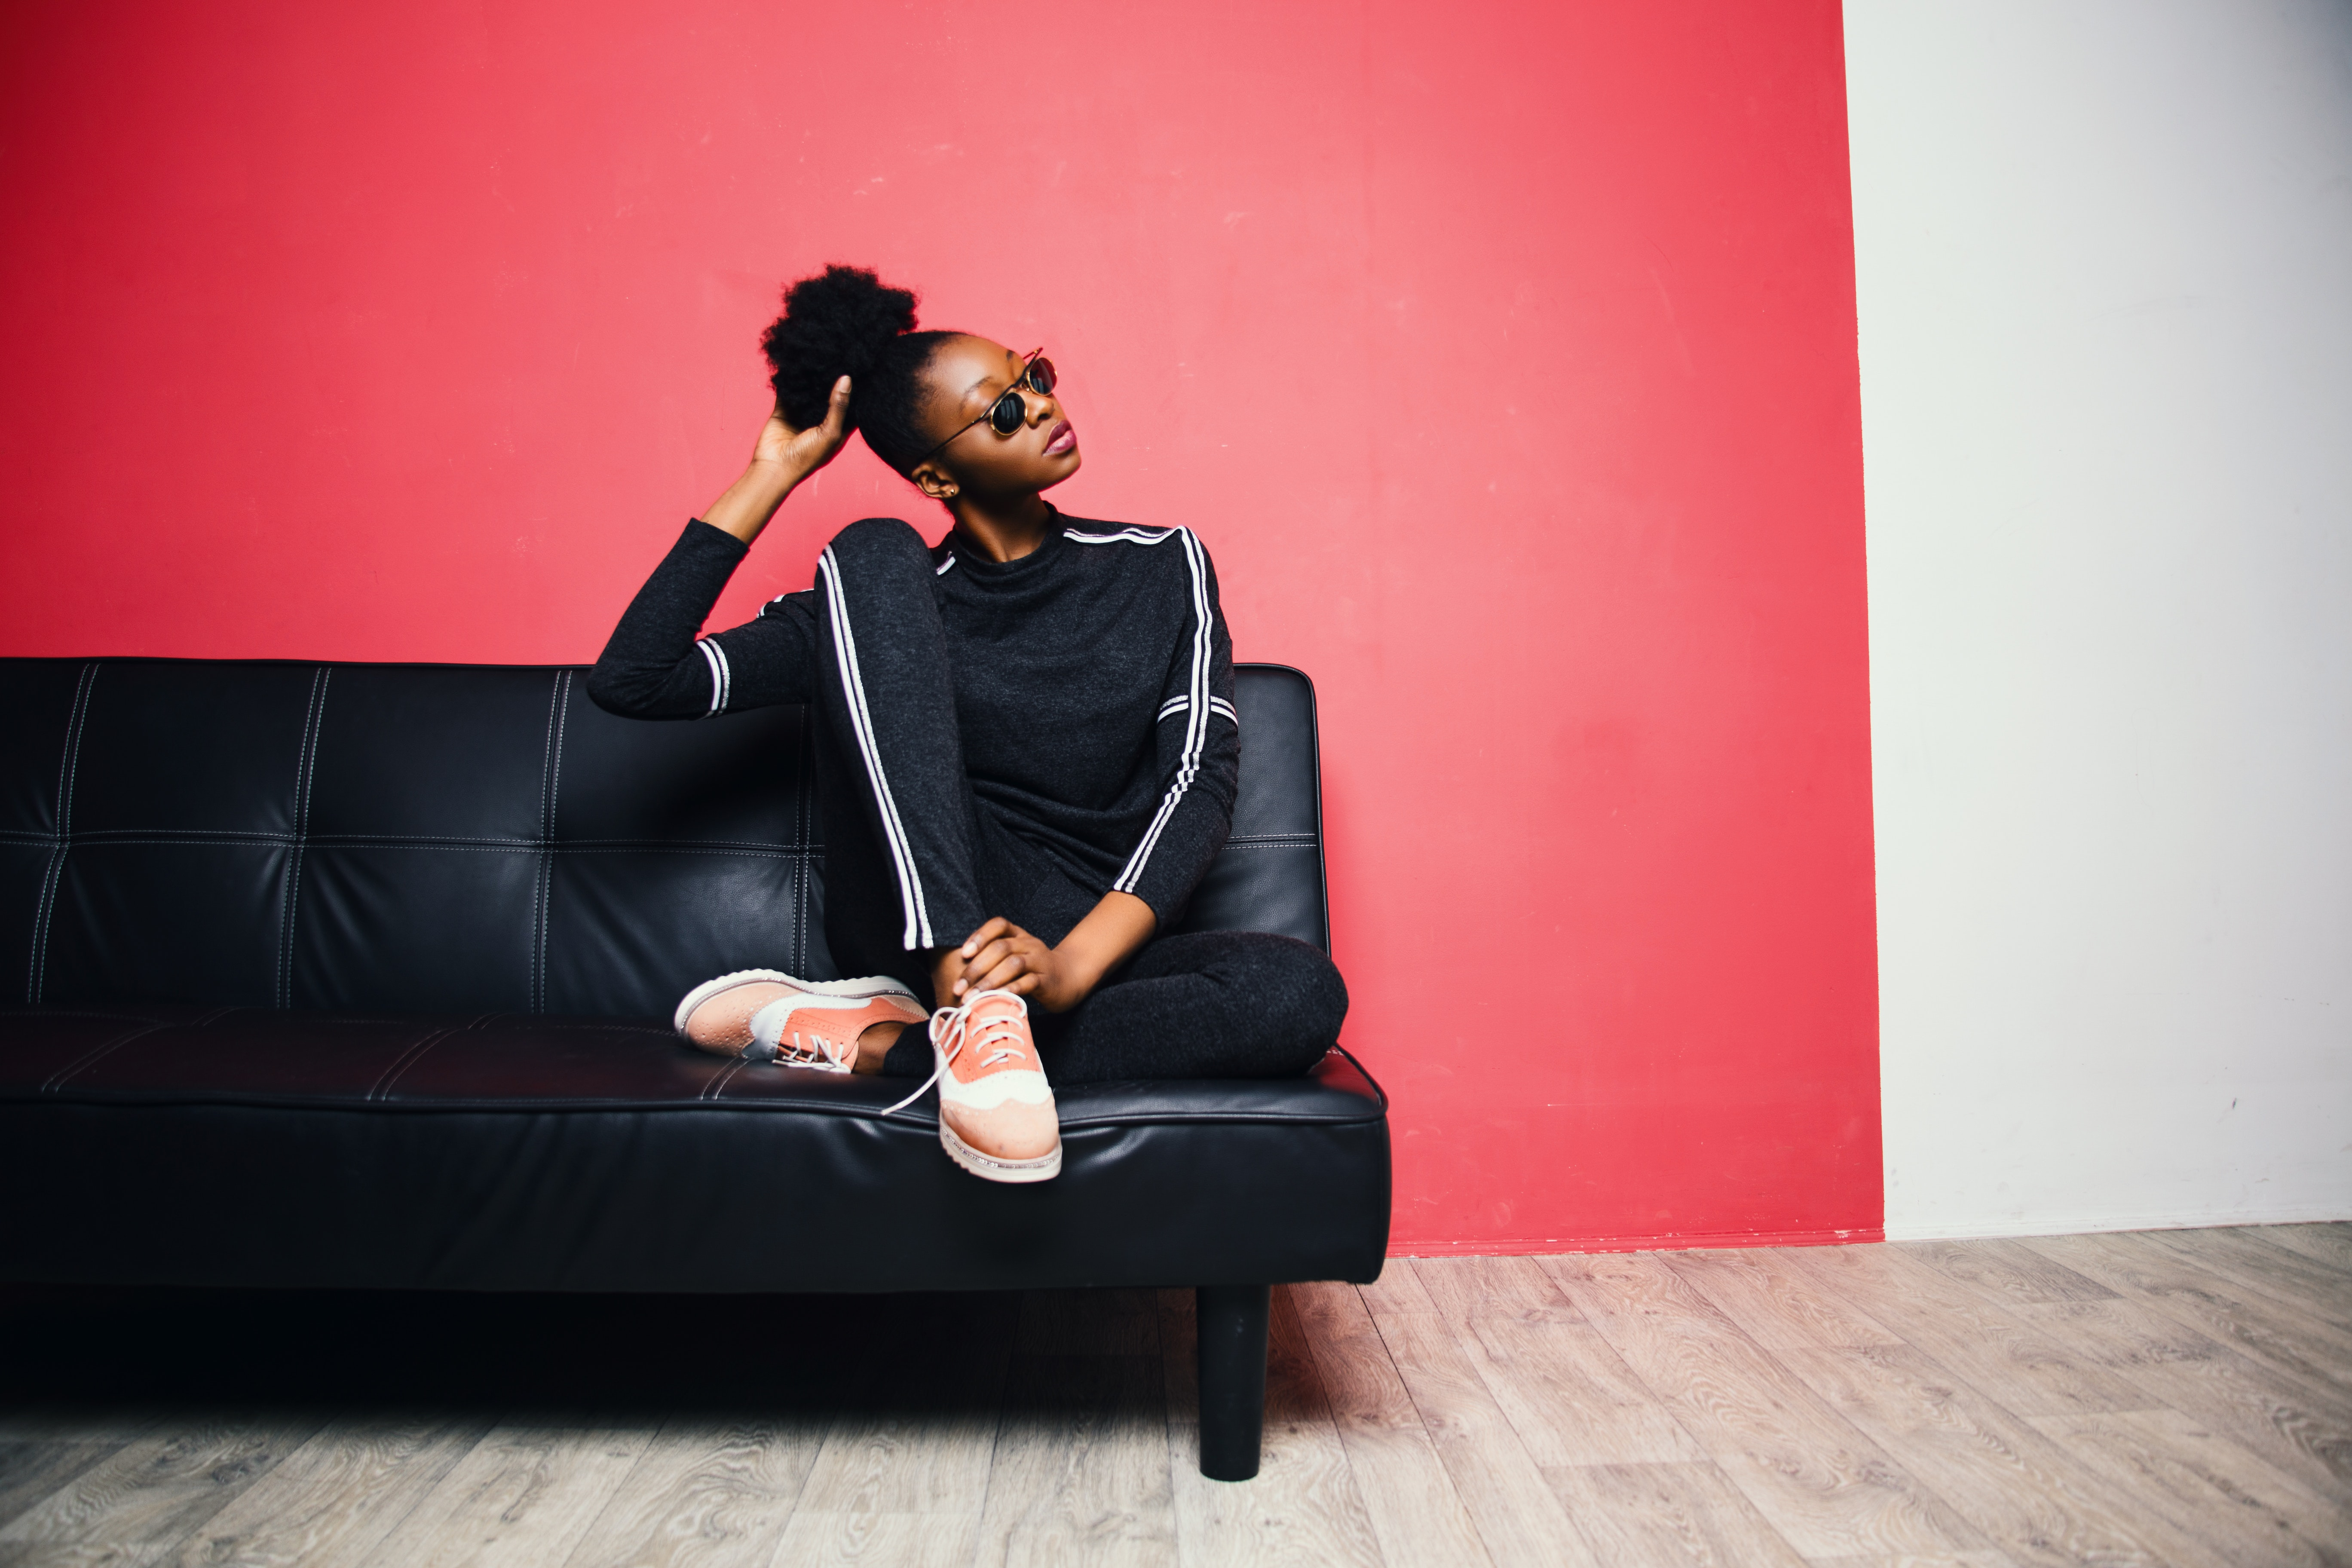 Woman with black-and-white sweater with pants sitting on black leather sofa beside red painted wall photo